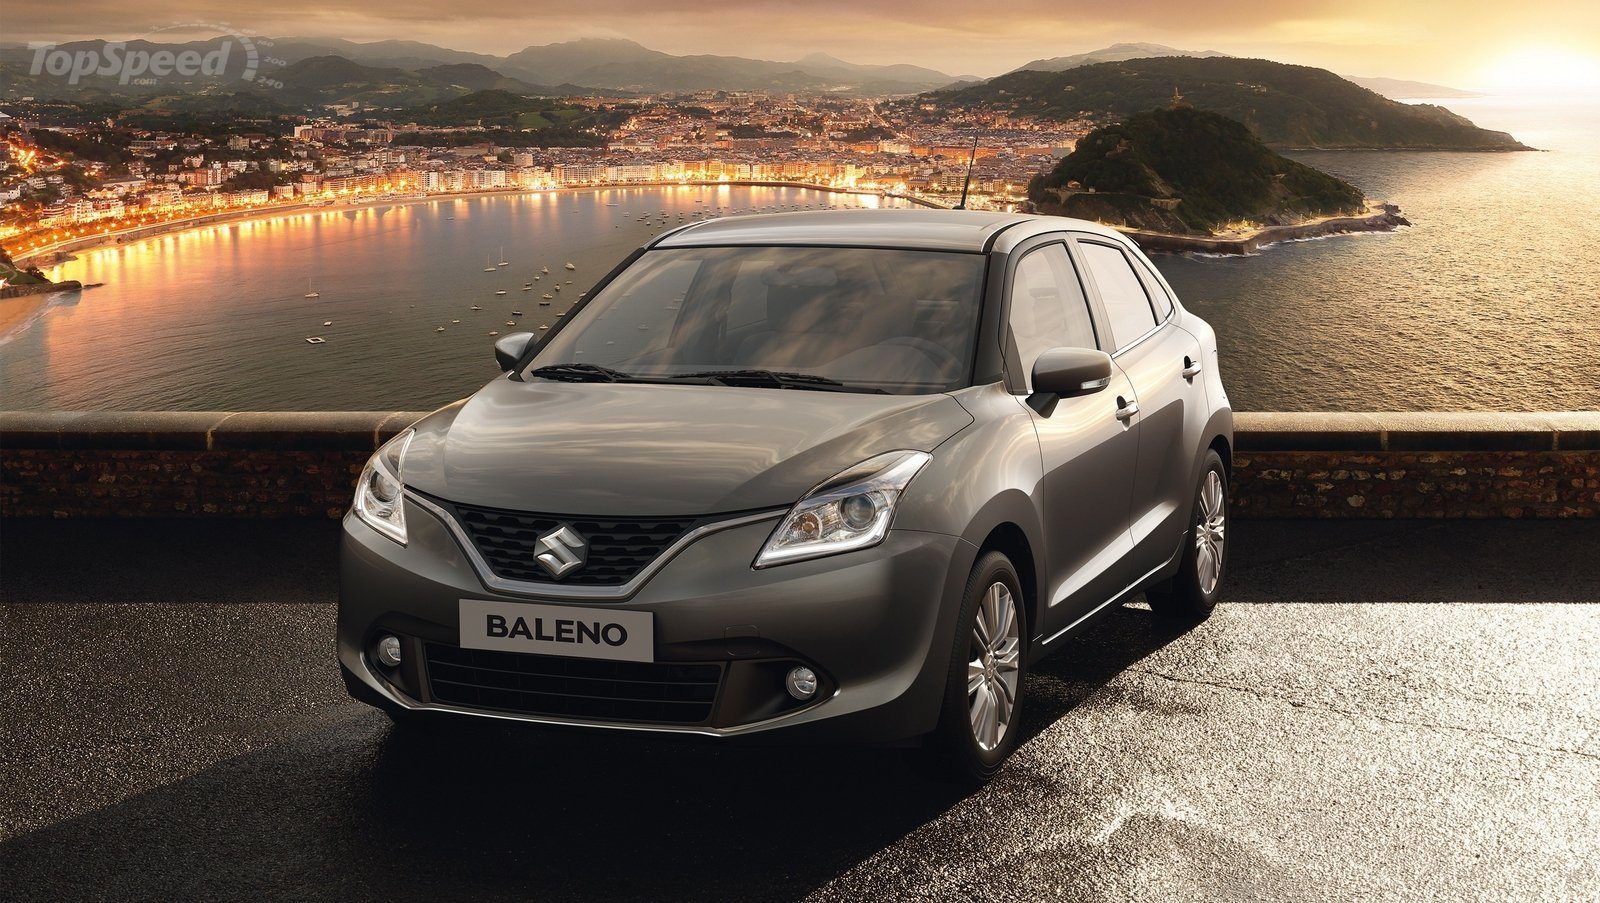 2016 suzuki baleno picture 646219 car review top speed. Black Bedroom Furniture Sets. Home Design Ideas